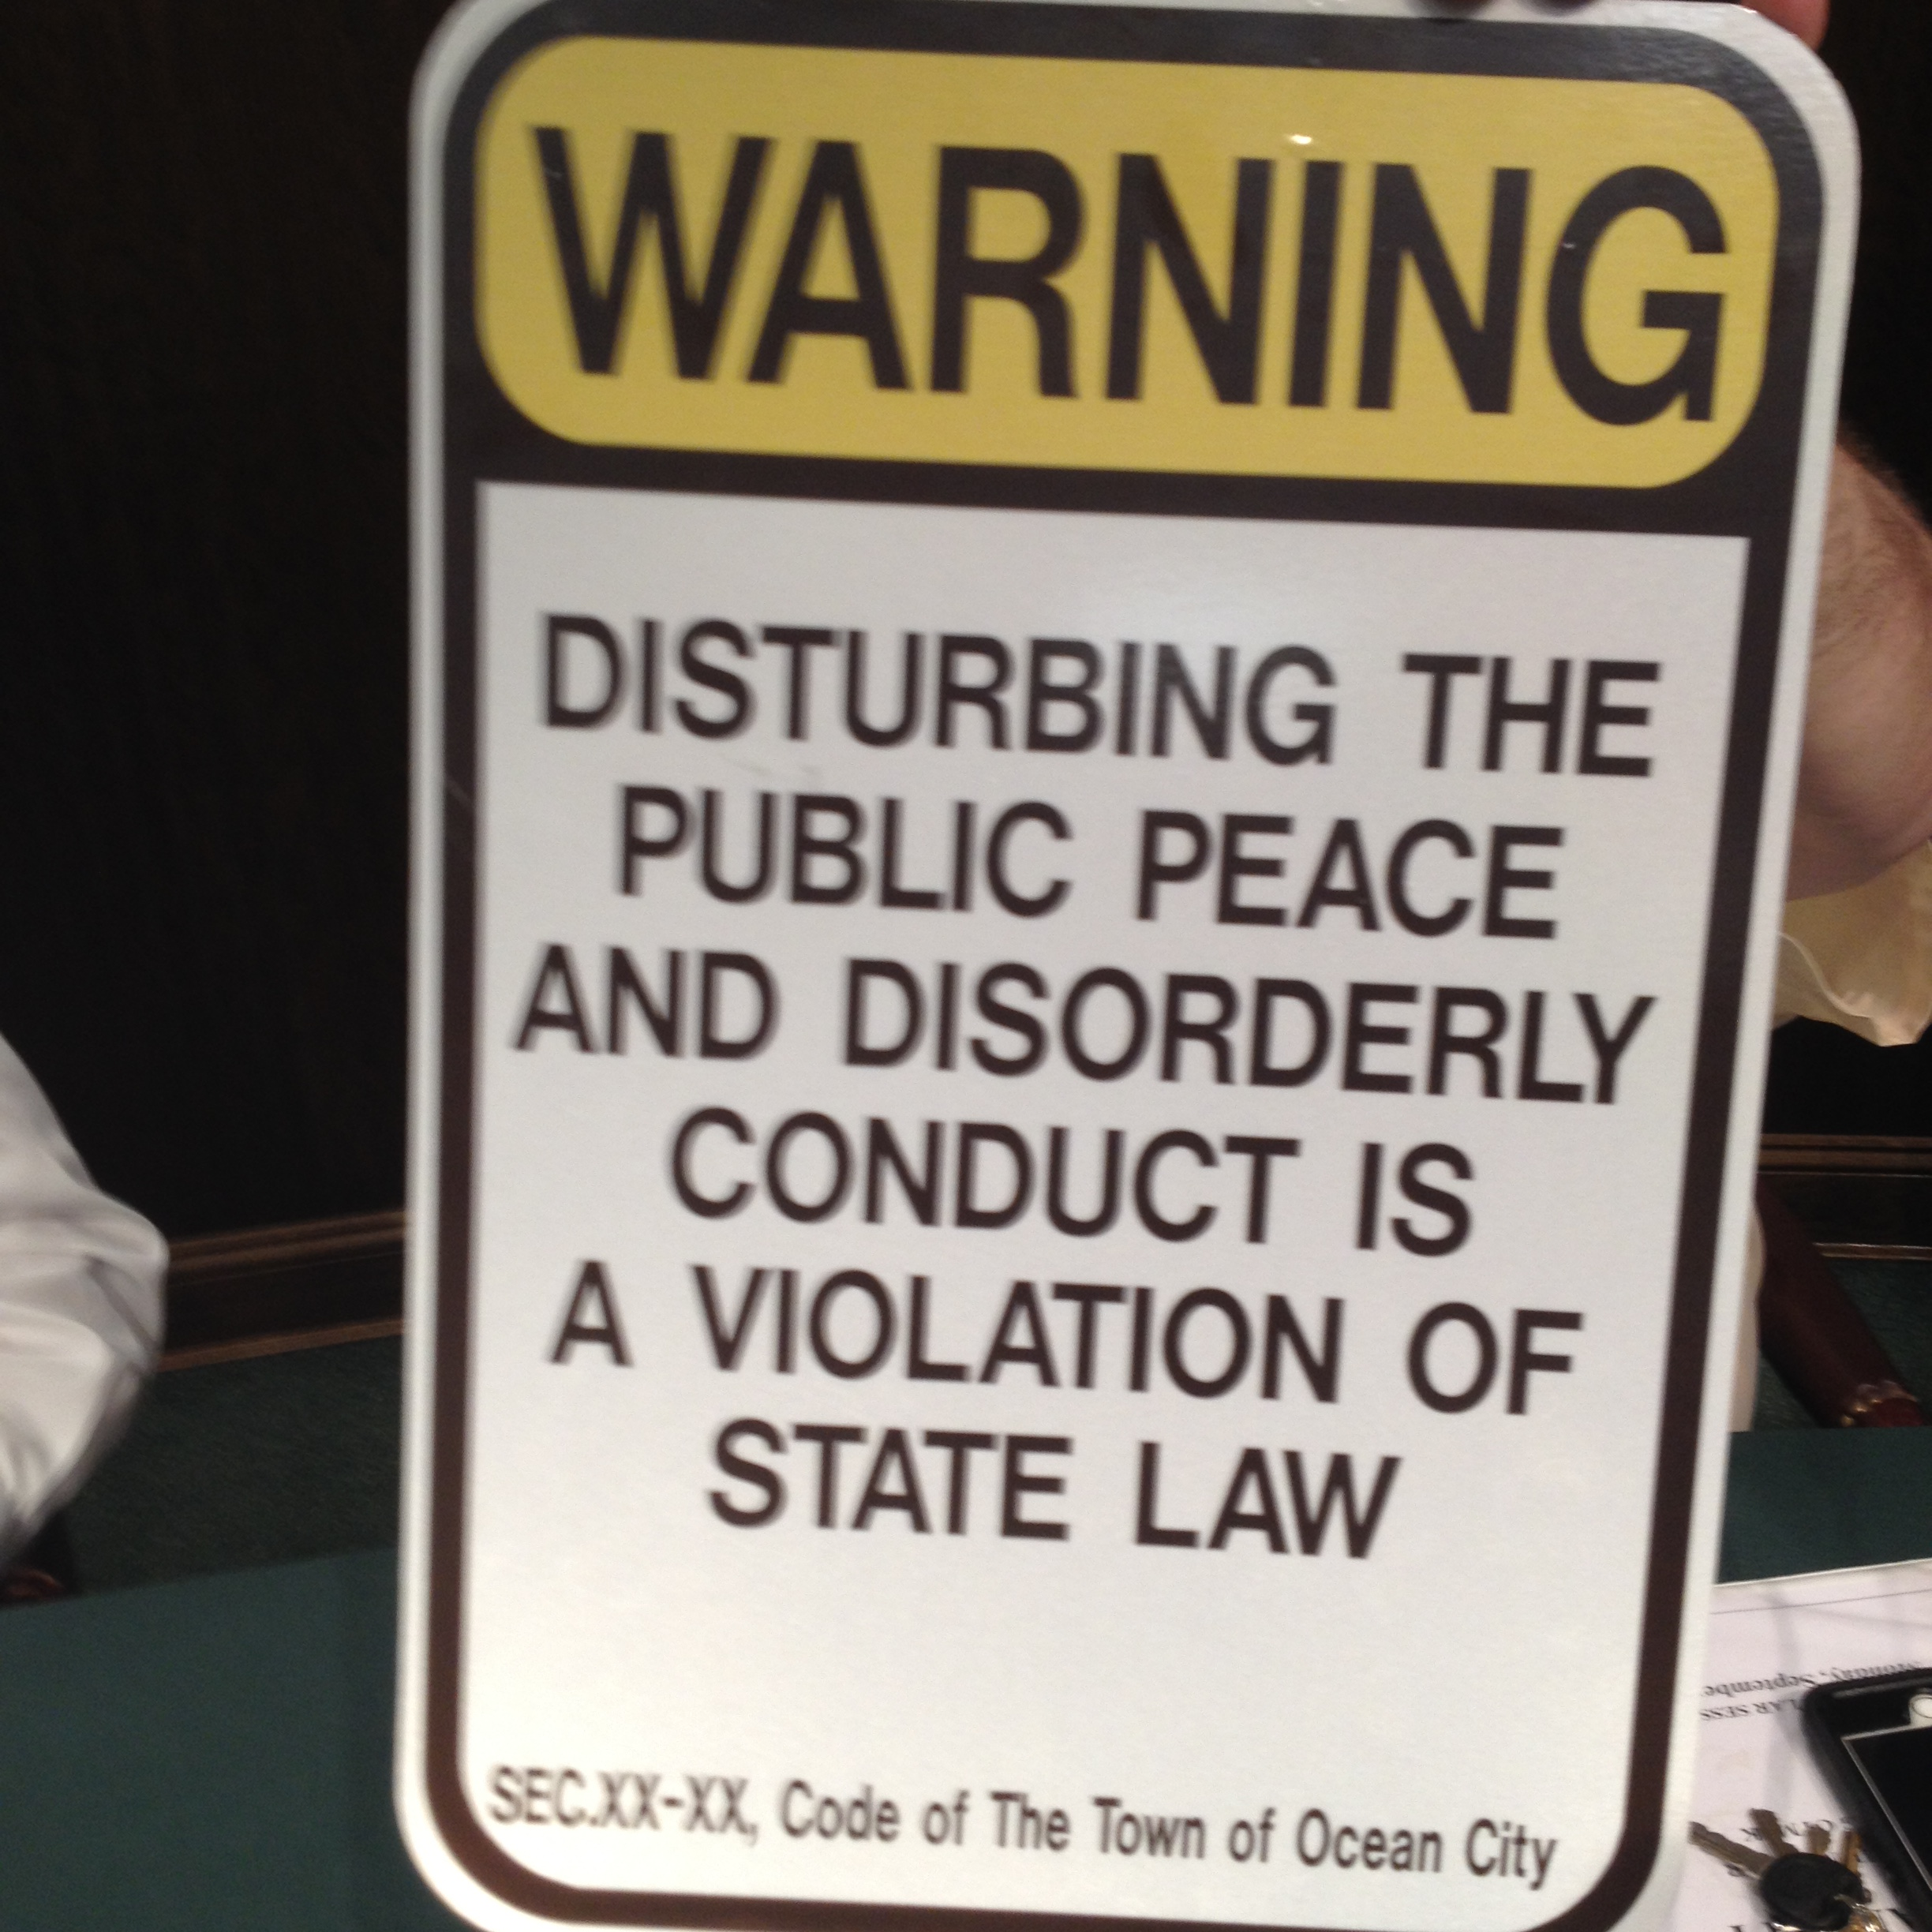 The signs approved this week will cost the city $7 to fabricate and overall cost about $5,000 to distribute to all required resort businesses. This sign was shown and approved by the Mayor and Council this week. Photo by Shawn Soper